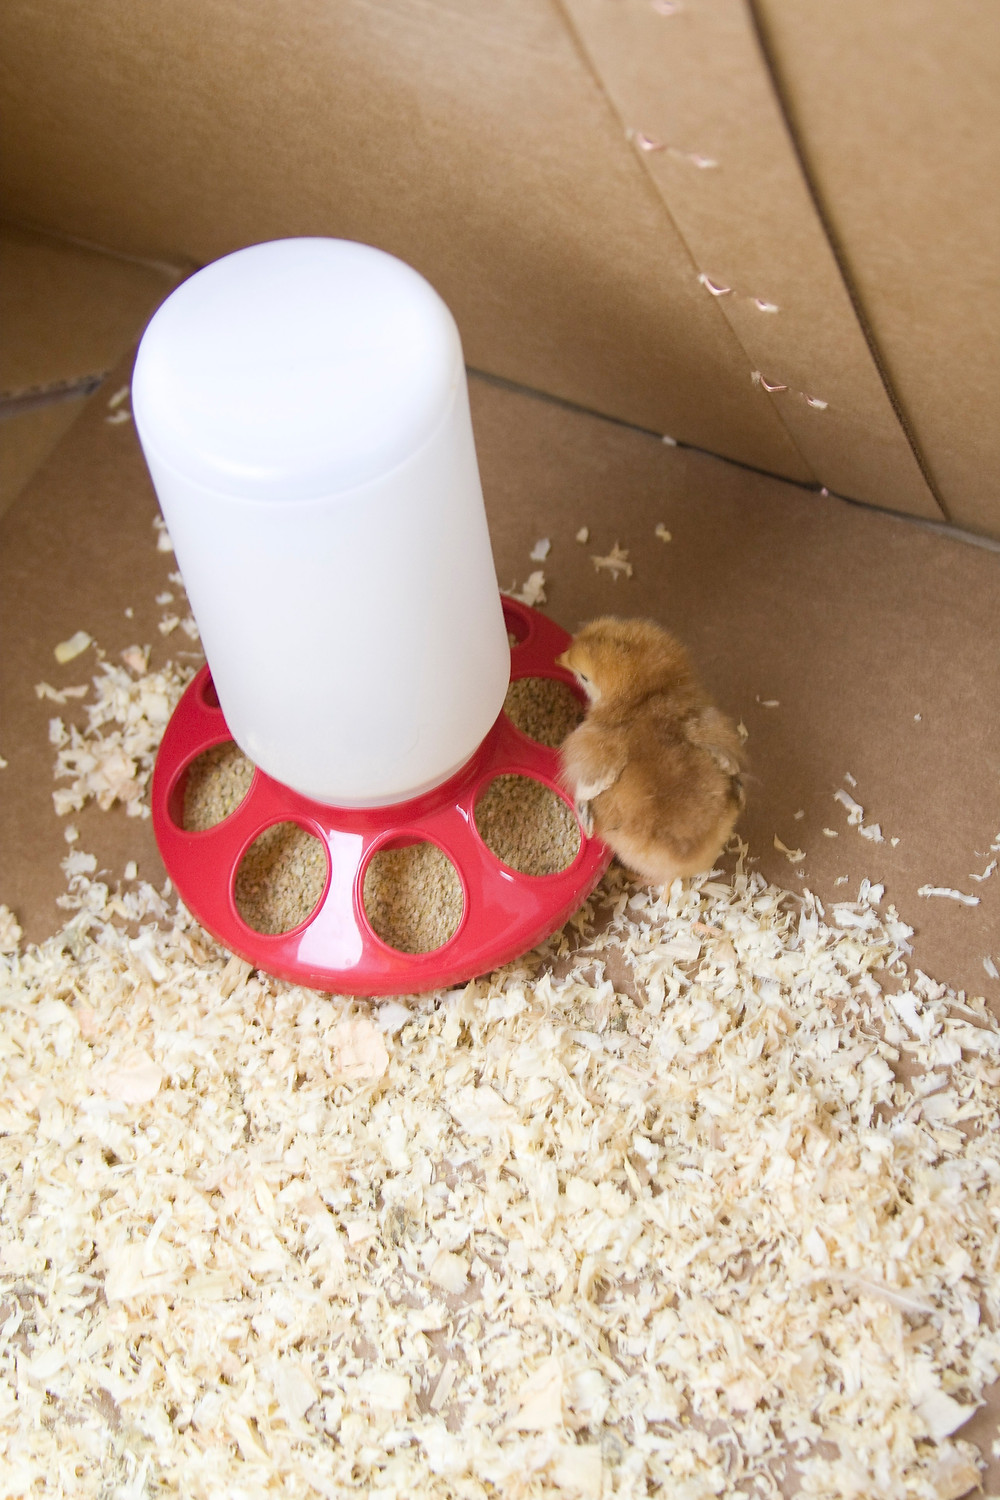 Plastic 1 quart chick feeder in a brooder